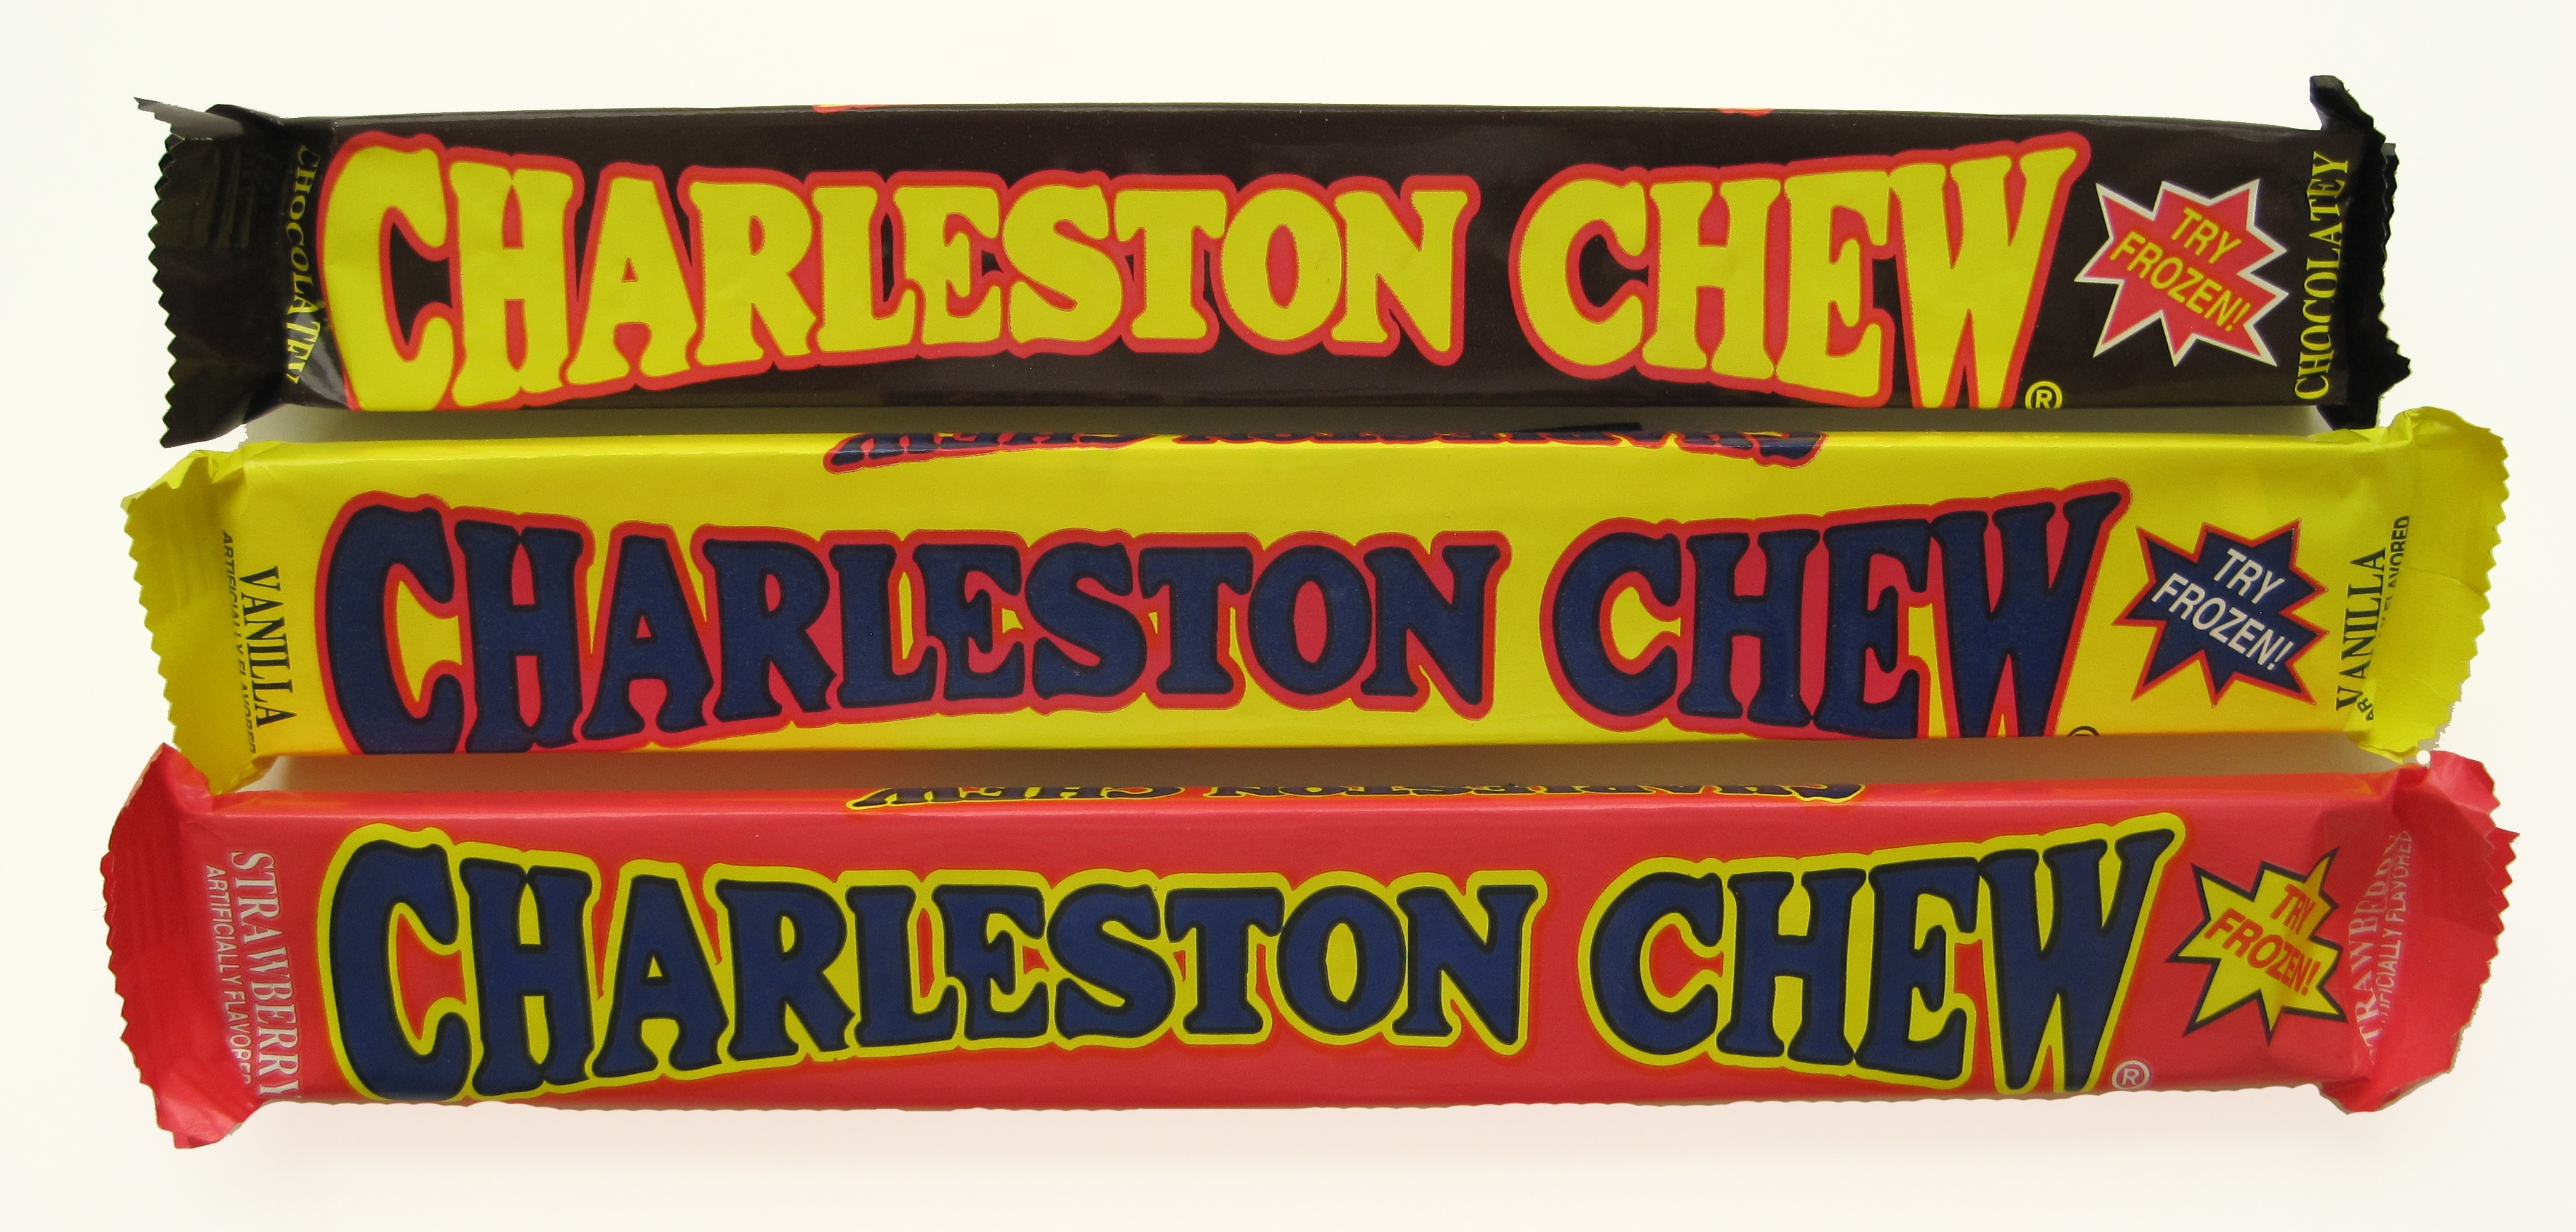 charleston-chew-candy-bar